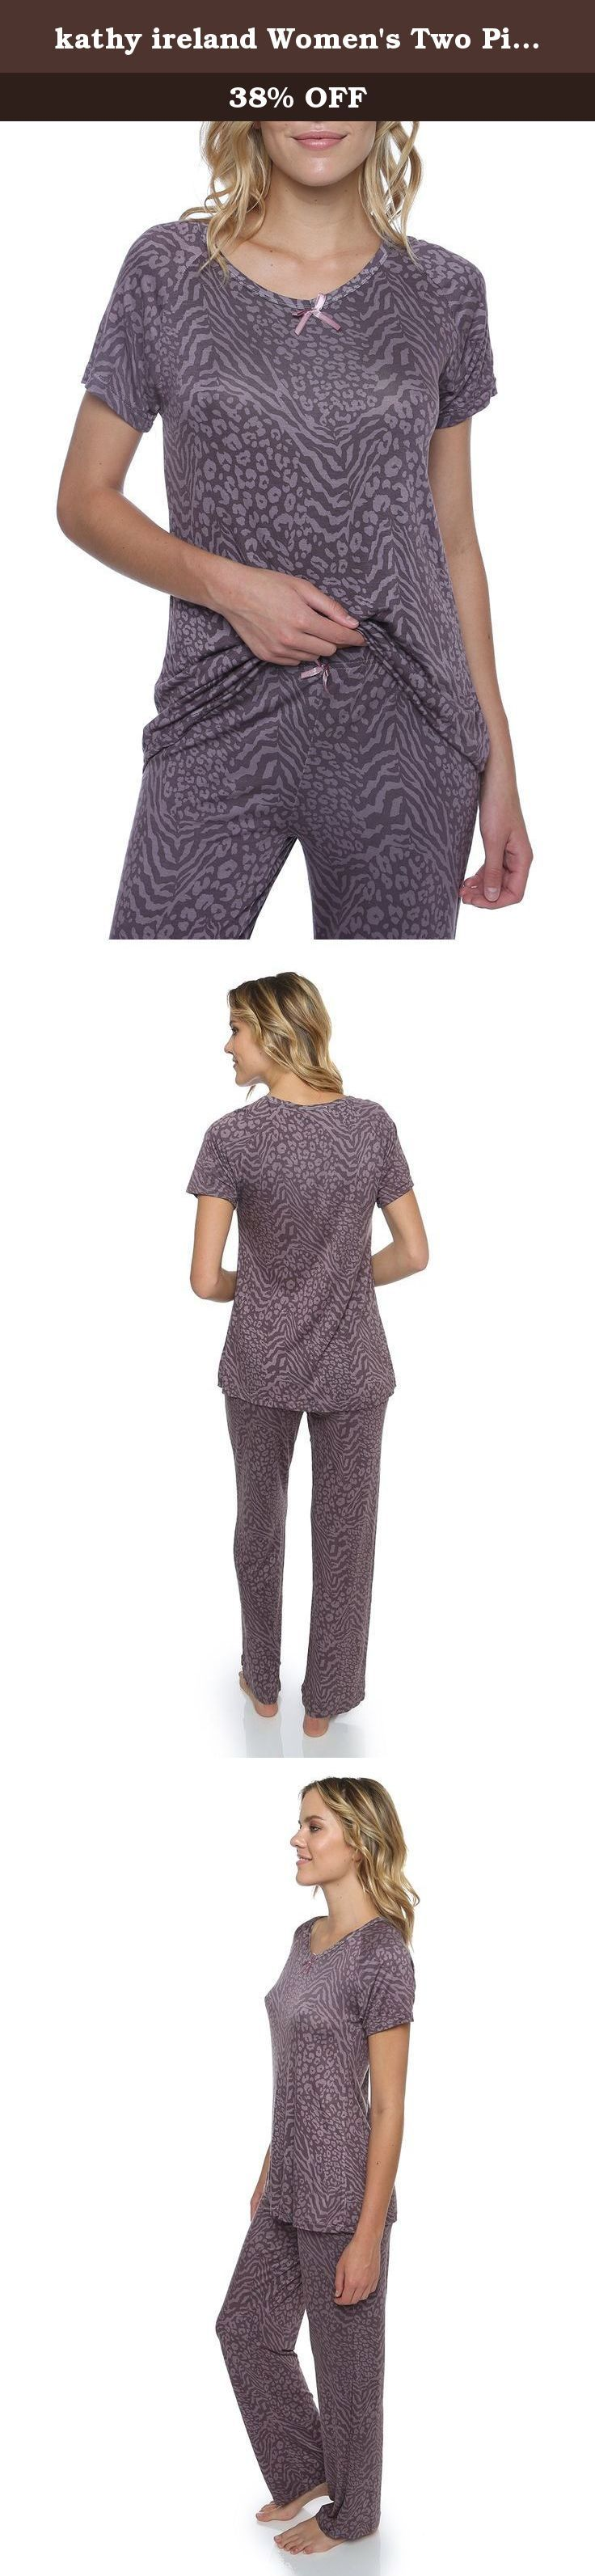 kathy ireland Women's Two Piece Animal Print Sleep Shirt and Pant Set Purple L. This two piece matching sleep set comes with a light and beautiful animal printed top with a simple bow along the collar and a pair of sleep pants with a matching bow along the waistline.